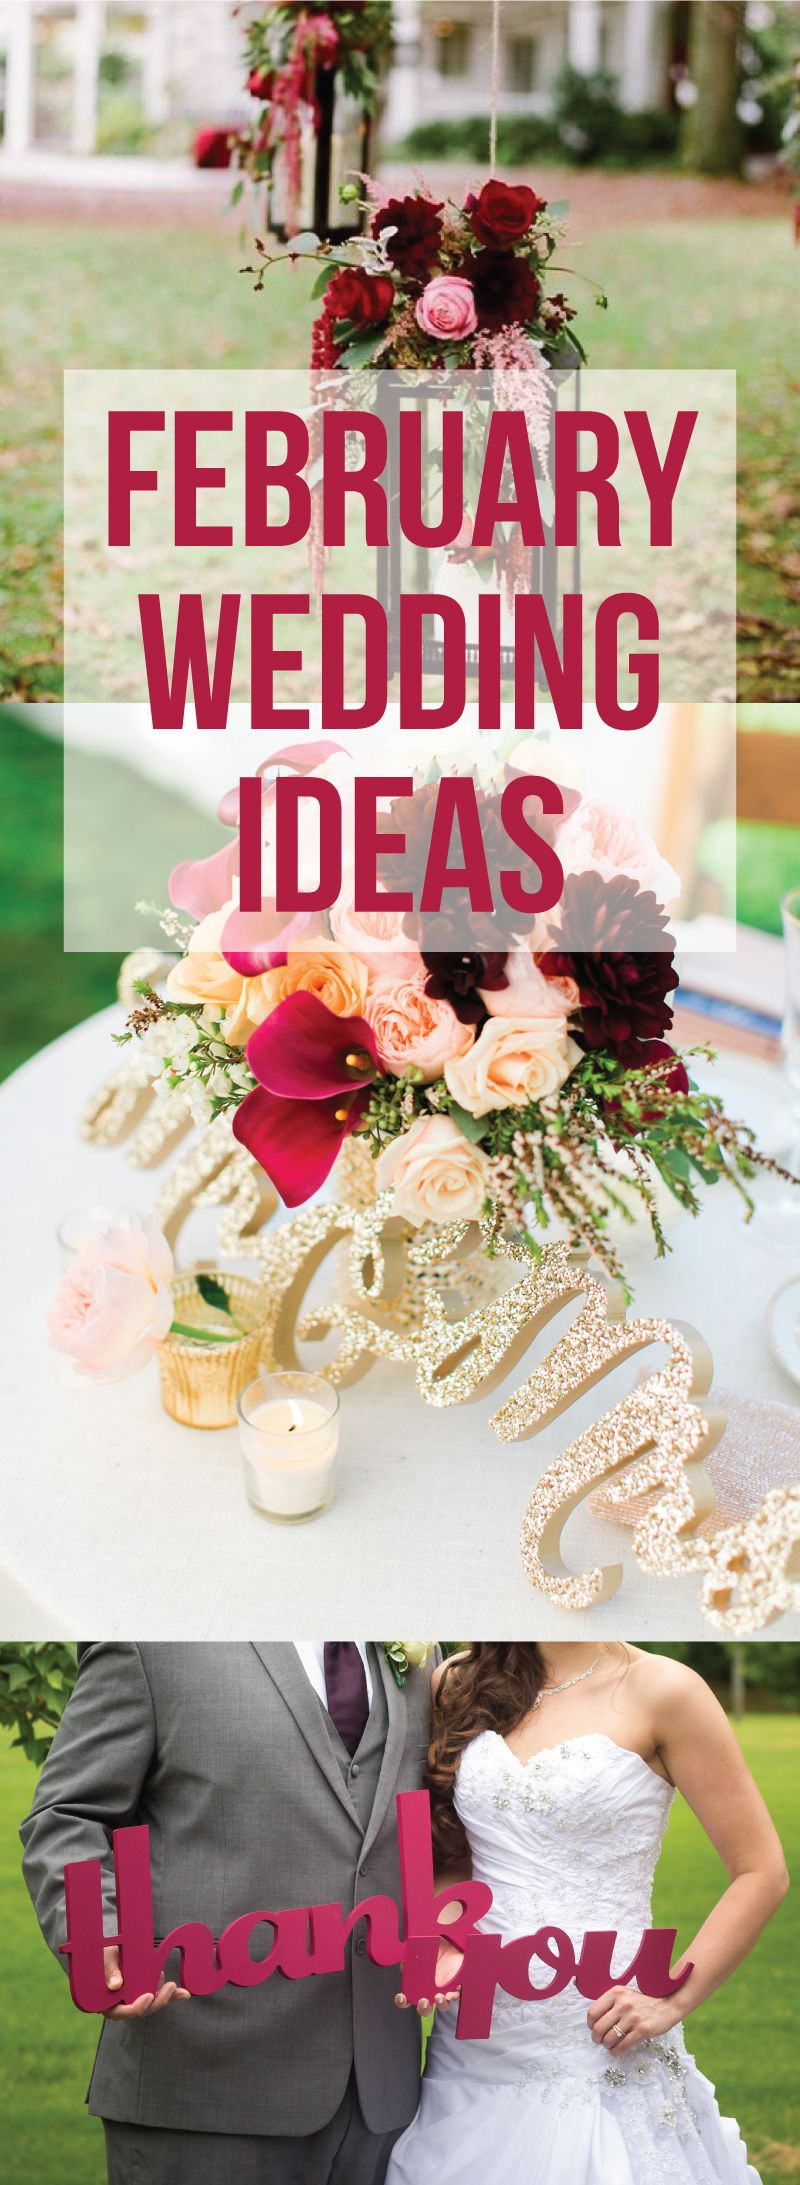 hundreds of great ideas for your romantic february wedding